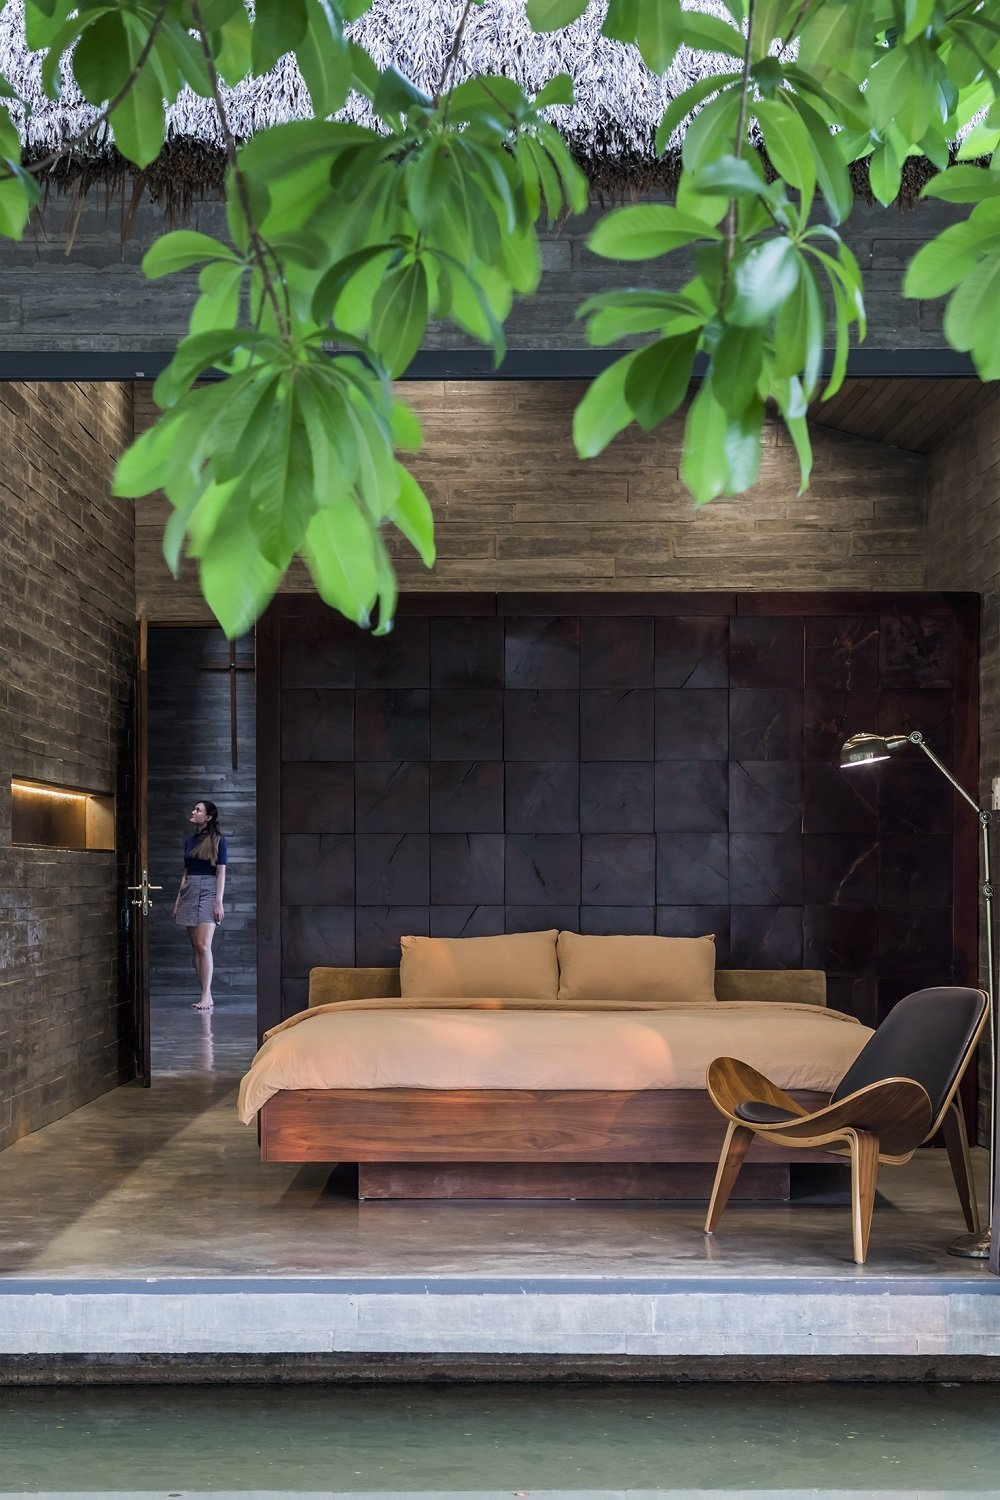 Bedroom, Ceiling Lighting, Bed, Concrete Floor, and Chair  Photo 6 of 16 in A Koi-Filled Moat Surrounds This Vietnamese House from Am house